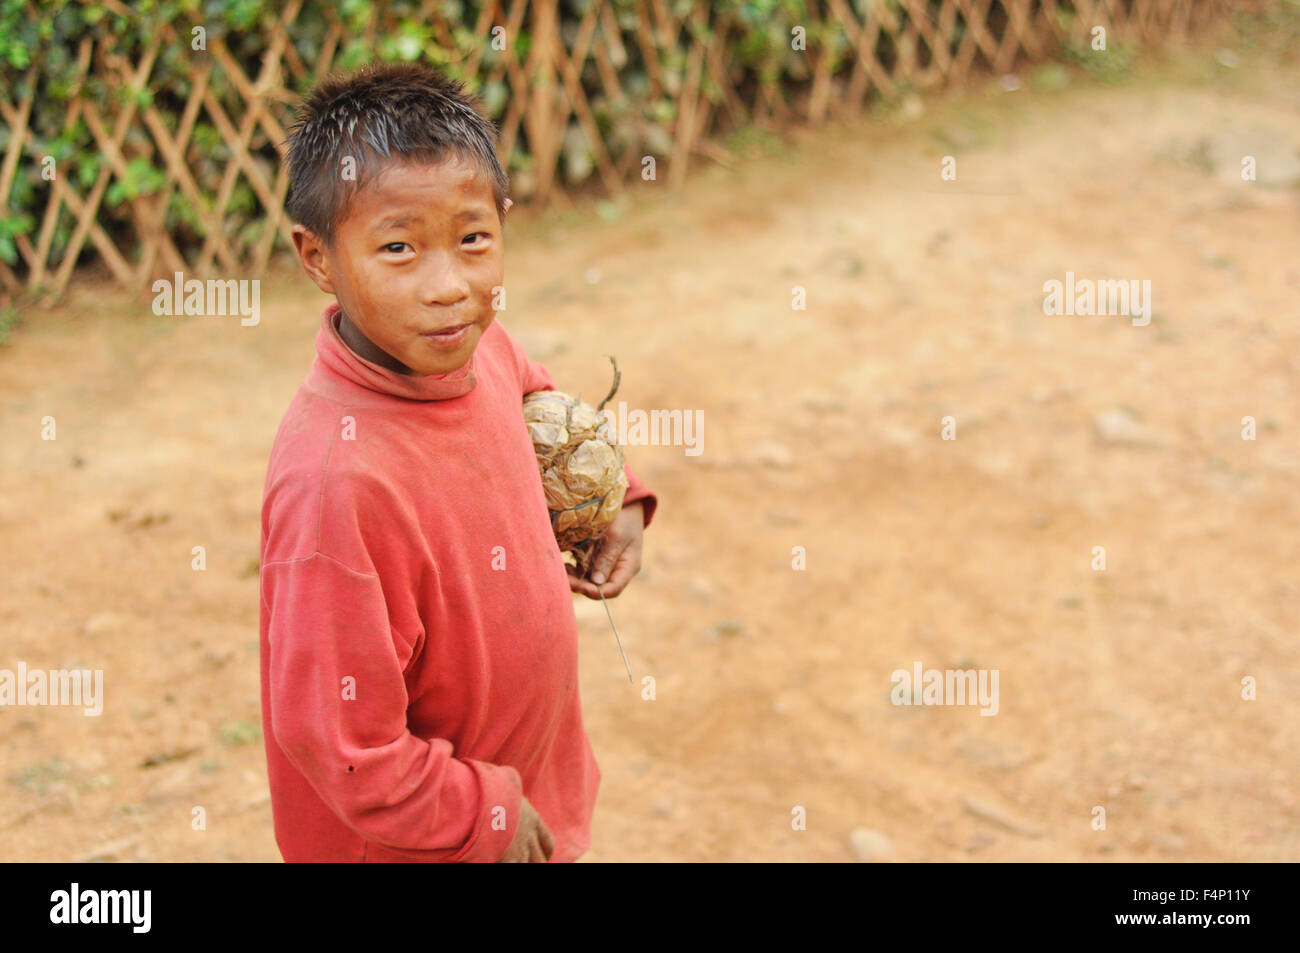 Nagaland, India - March 2012: Small footballer with hand-made ball in Nagaland, remote region of India. Documentary - Stock Image